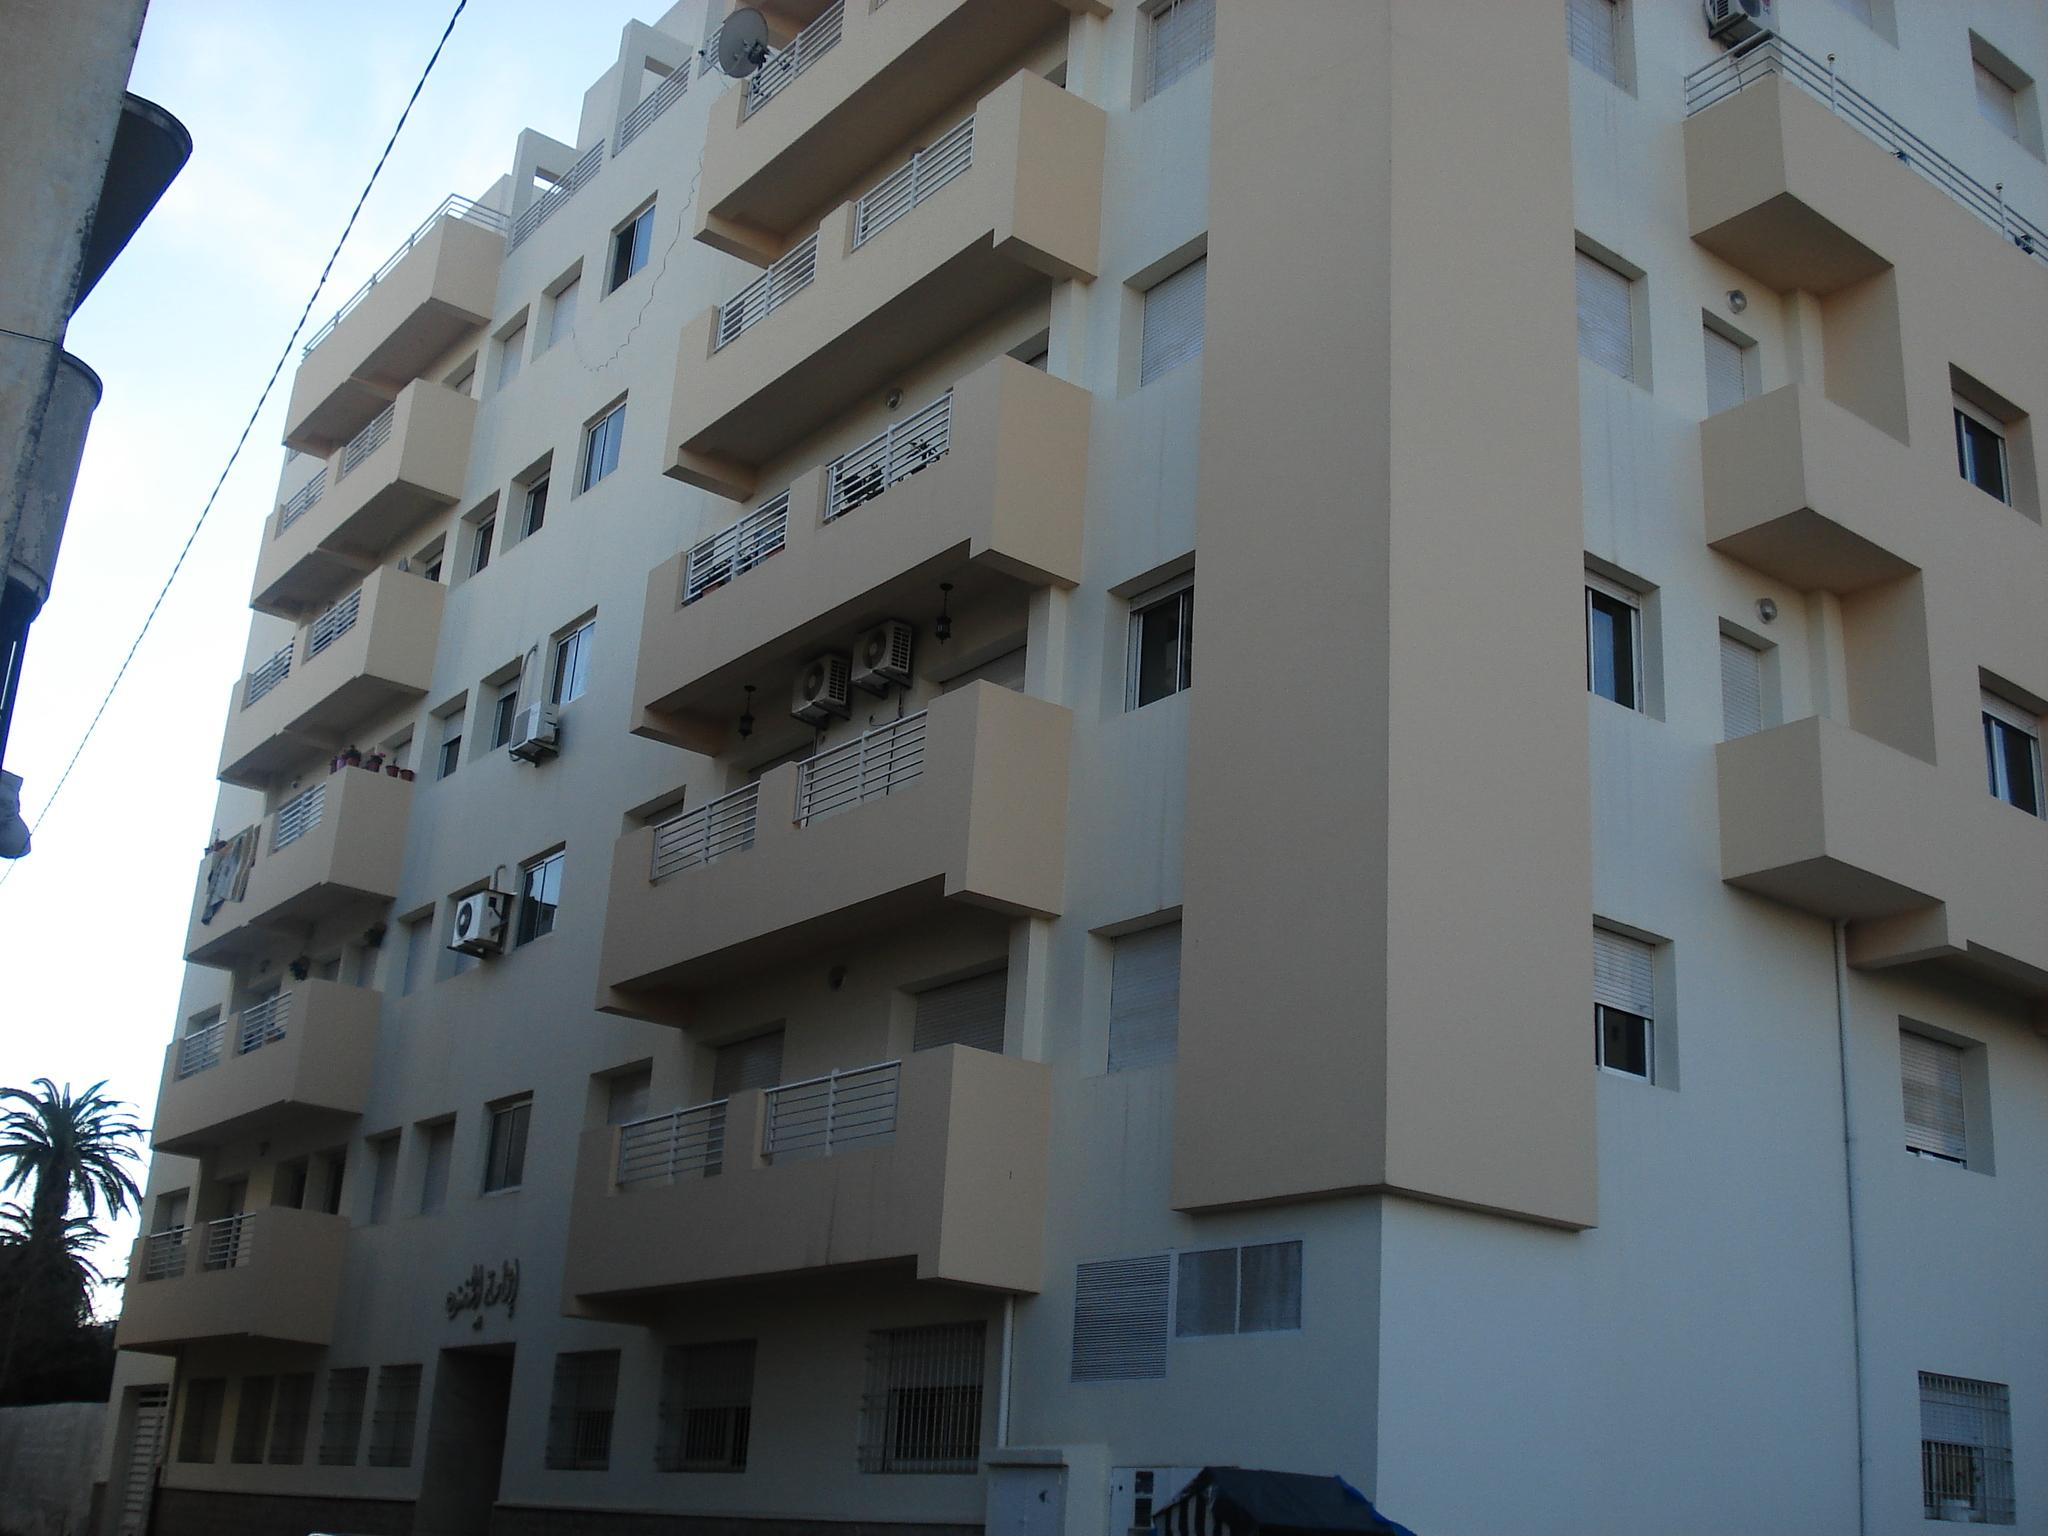 Appartement en Location à fes 5.000 DH